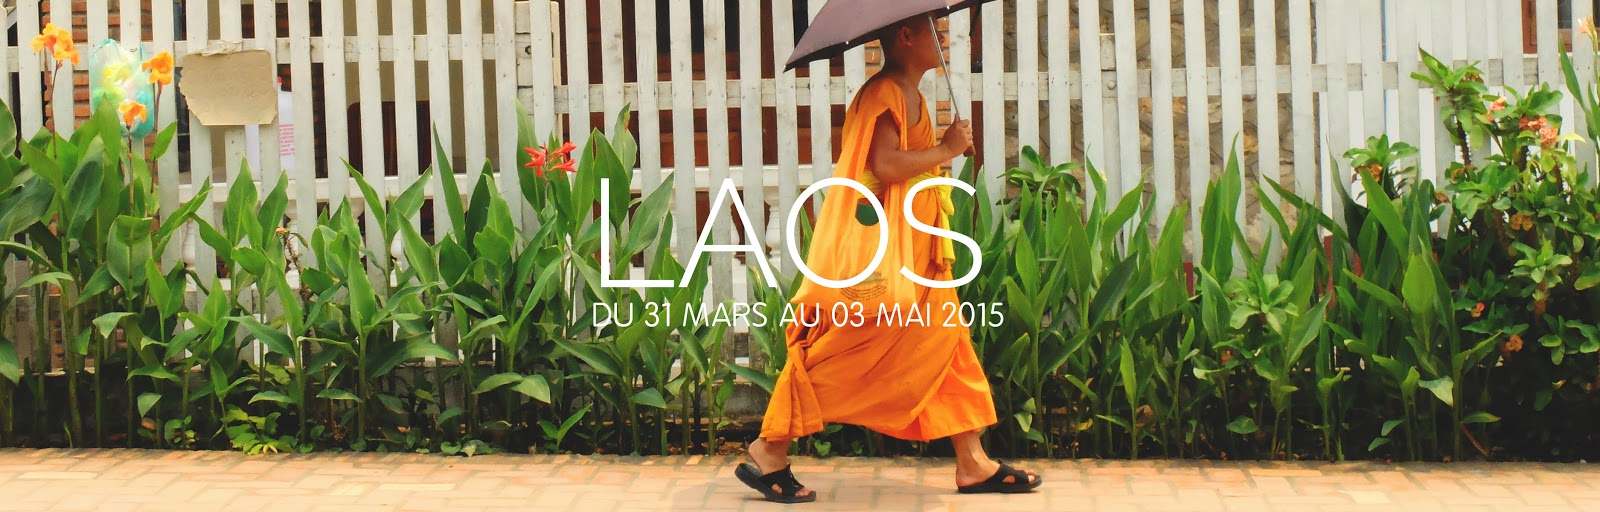 http://andiamopepito.blogspot.com/search/label/Laos